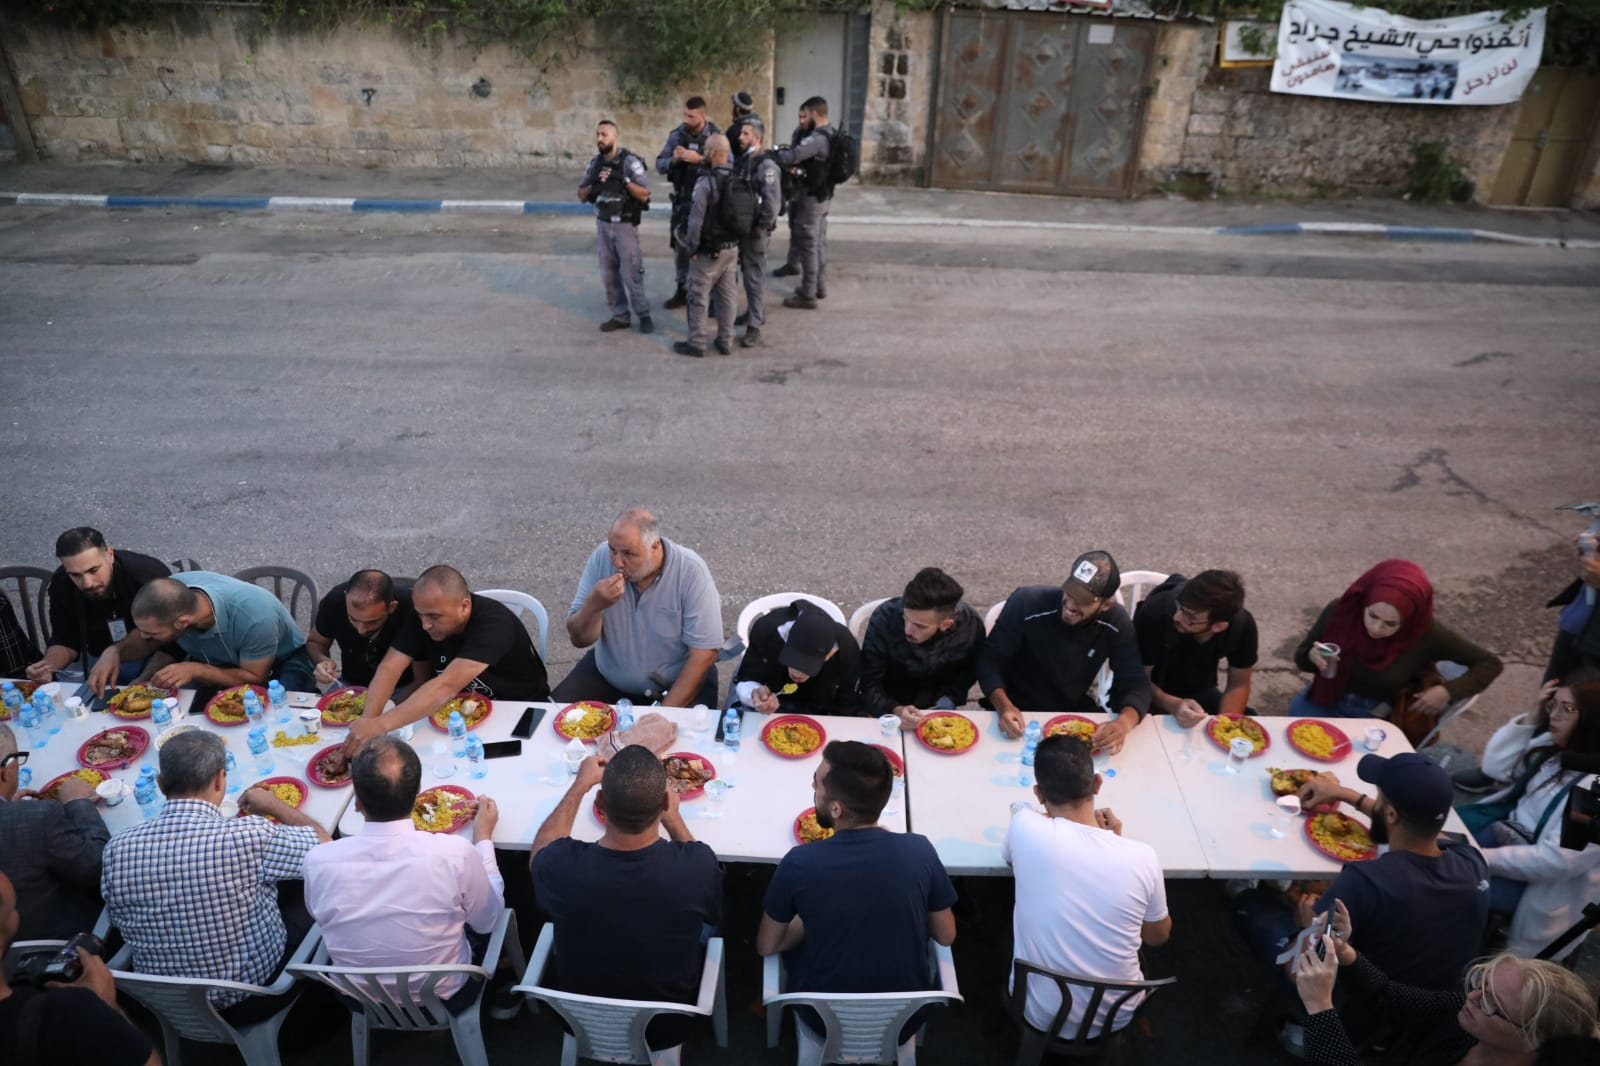 Palestinians hold their nightly Iftar meal to break the Ramadan fast outside a Palestinian home previously taken over by Israeli settlers in the East Jerusalem neighborhood of Sheikh Jarrah, May 7, 2021. The Iftar was part of a nightly vigil held by Palestinians in the neighborhood to protest the planned eviction of four more Palestinian families fro their homes in the neighborhood. (Oren Ziv)